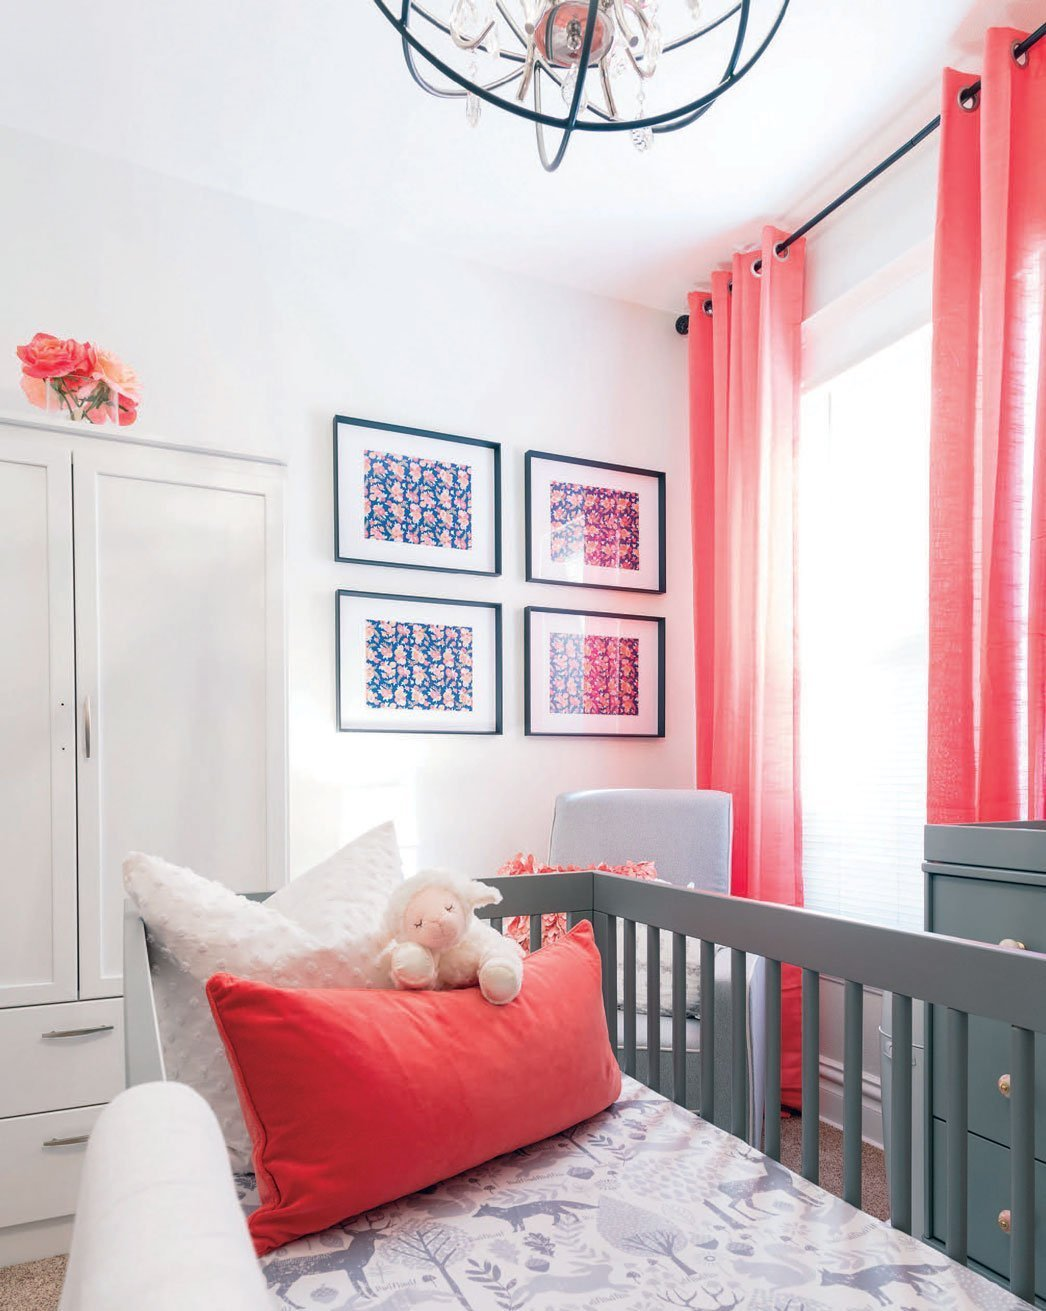 Stylish pink Nursery with a lamb stuffed animal in the crib.